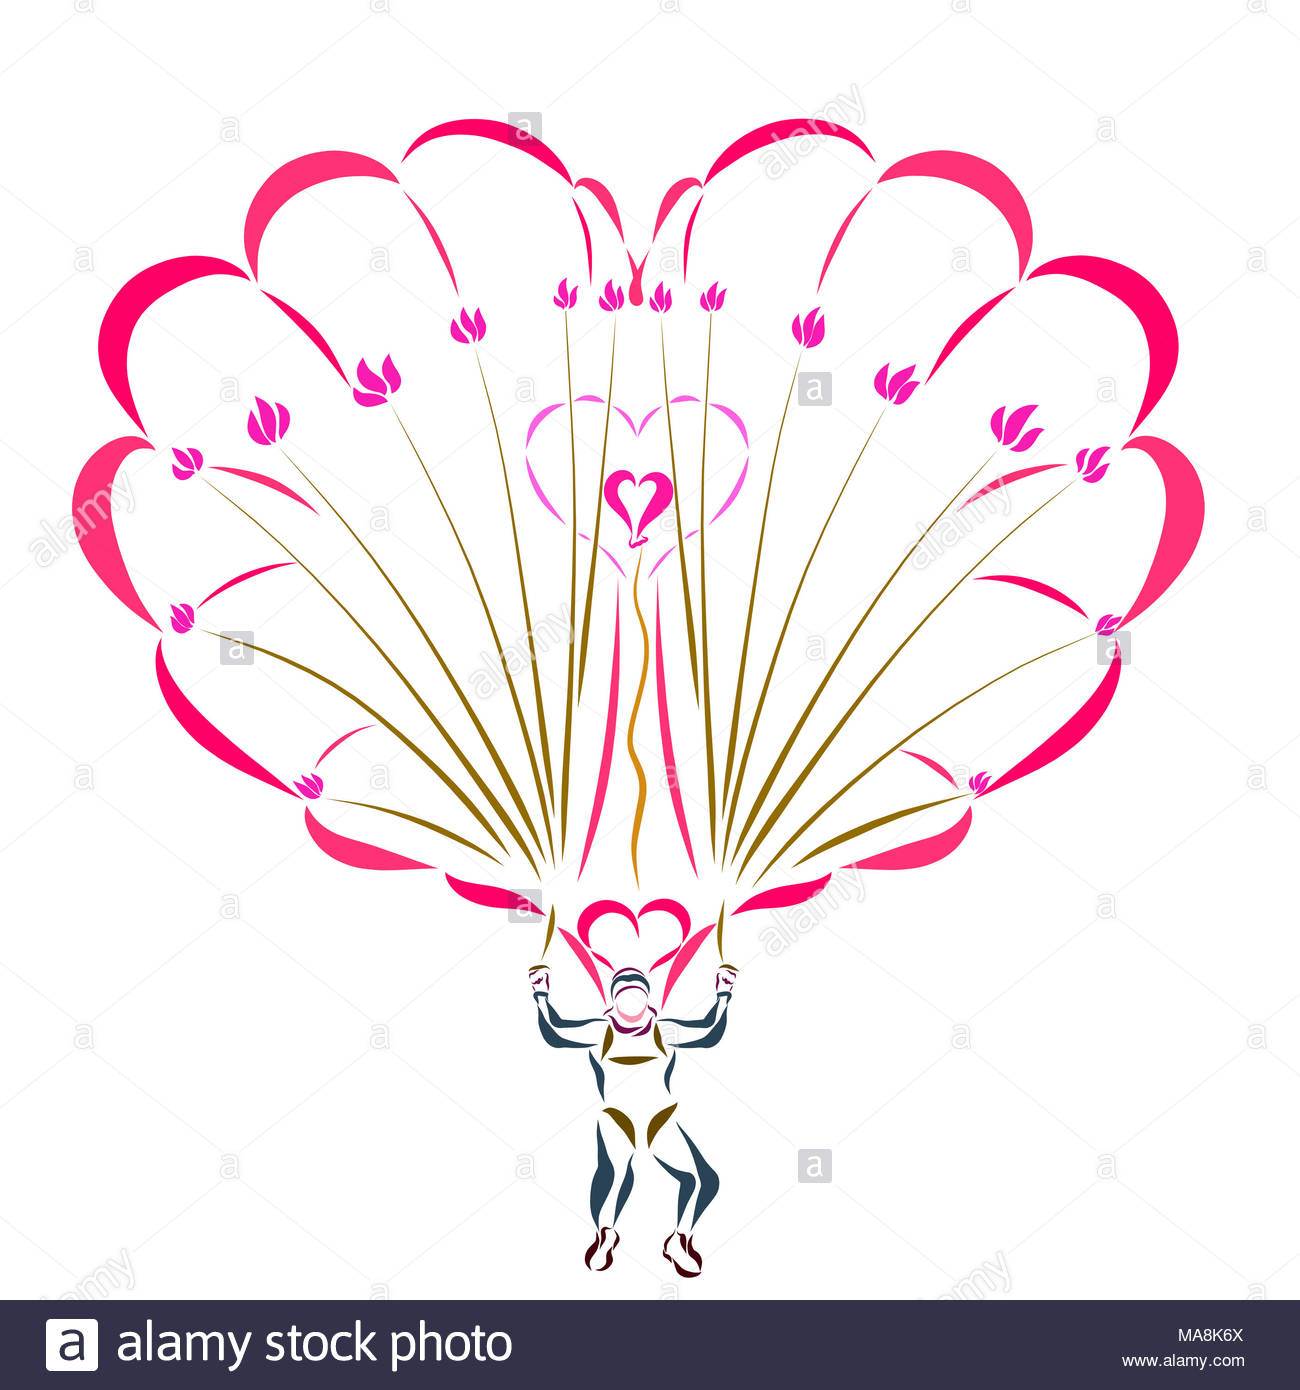 Heart flower logo stock photos heart flower logo stock images man on a parachute in the shape of heart with flowers stock image pooptronica Images